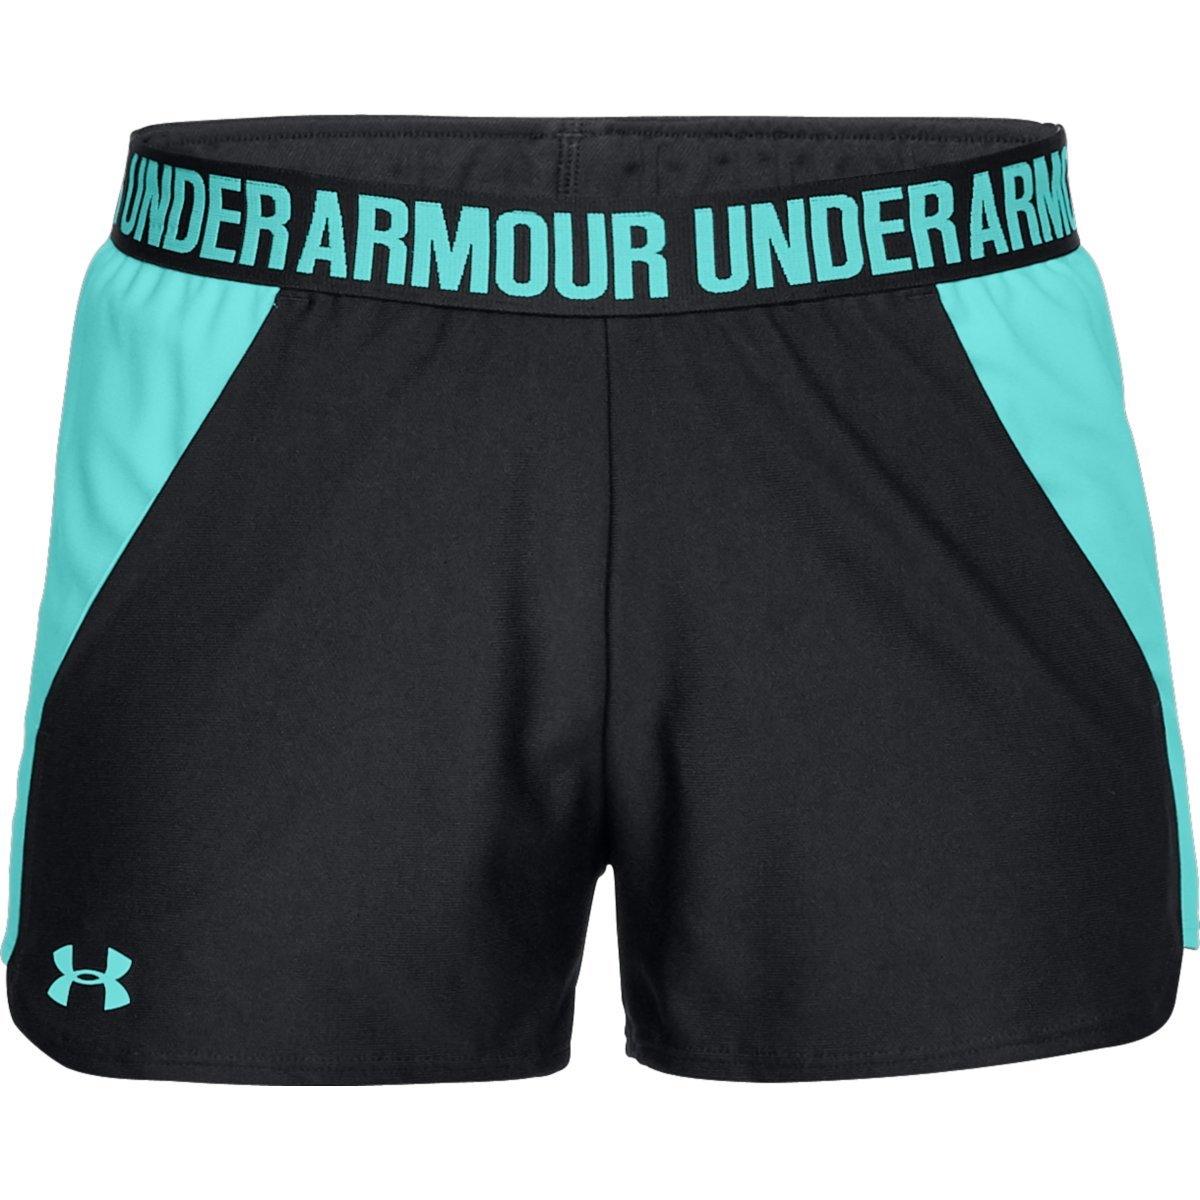 Under Armour Women's Play Up Shorts - Black, L